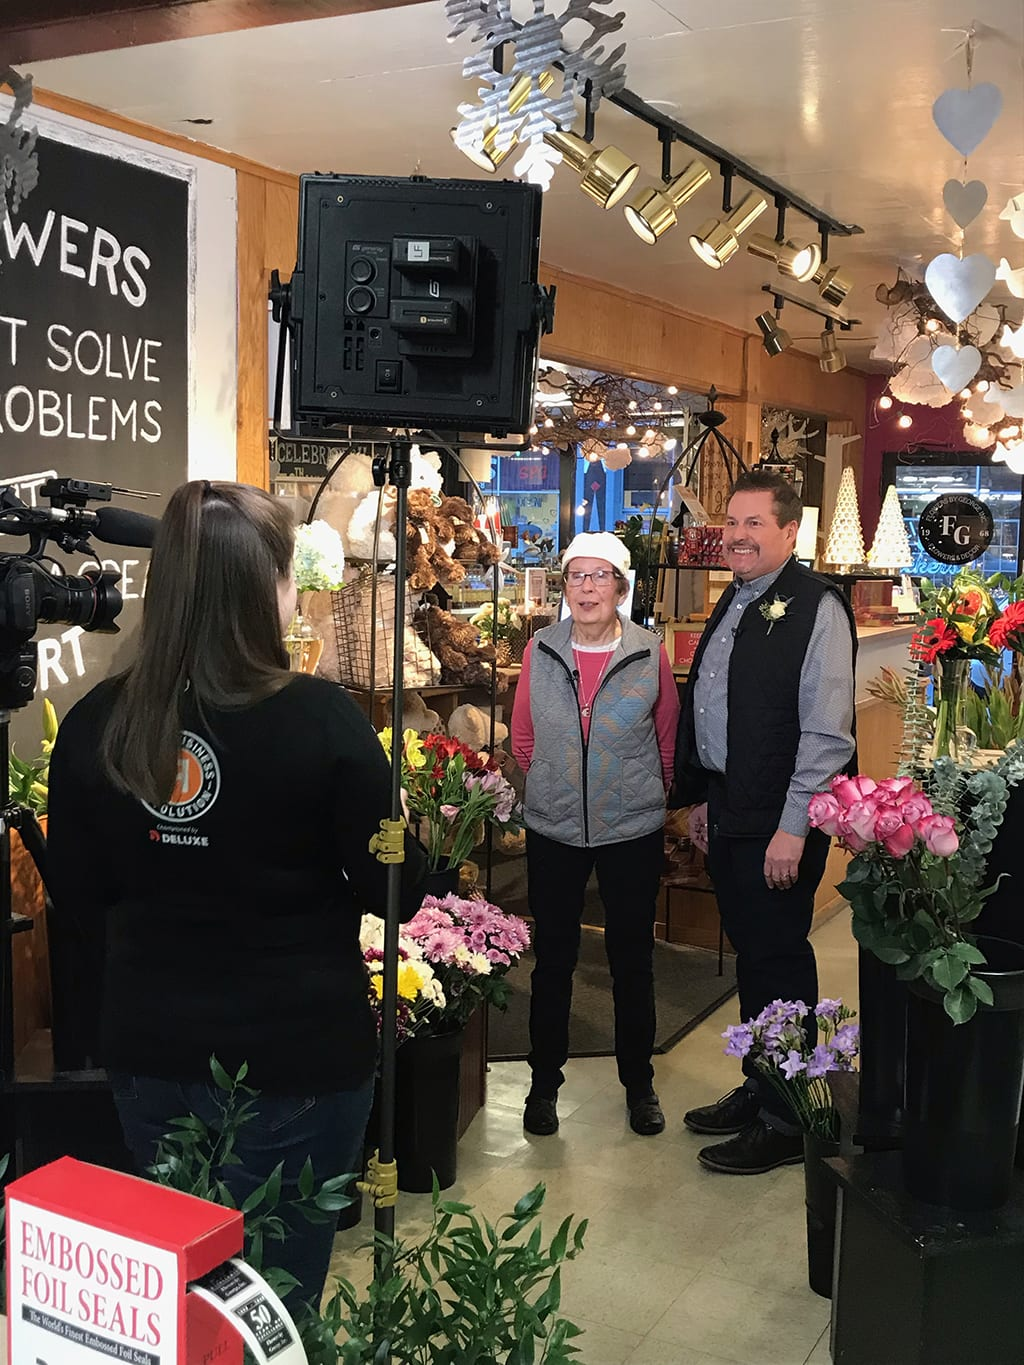 Small Business Revolution, a Hulu television program, has selected Arlington, Washington, as a finalist city for its fourth season. Its hosts recently interviewed the Flowers by George team, including SAF member David Boulton, AAF, PFCI, and his mother, Annalee.